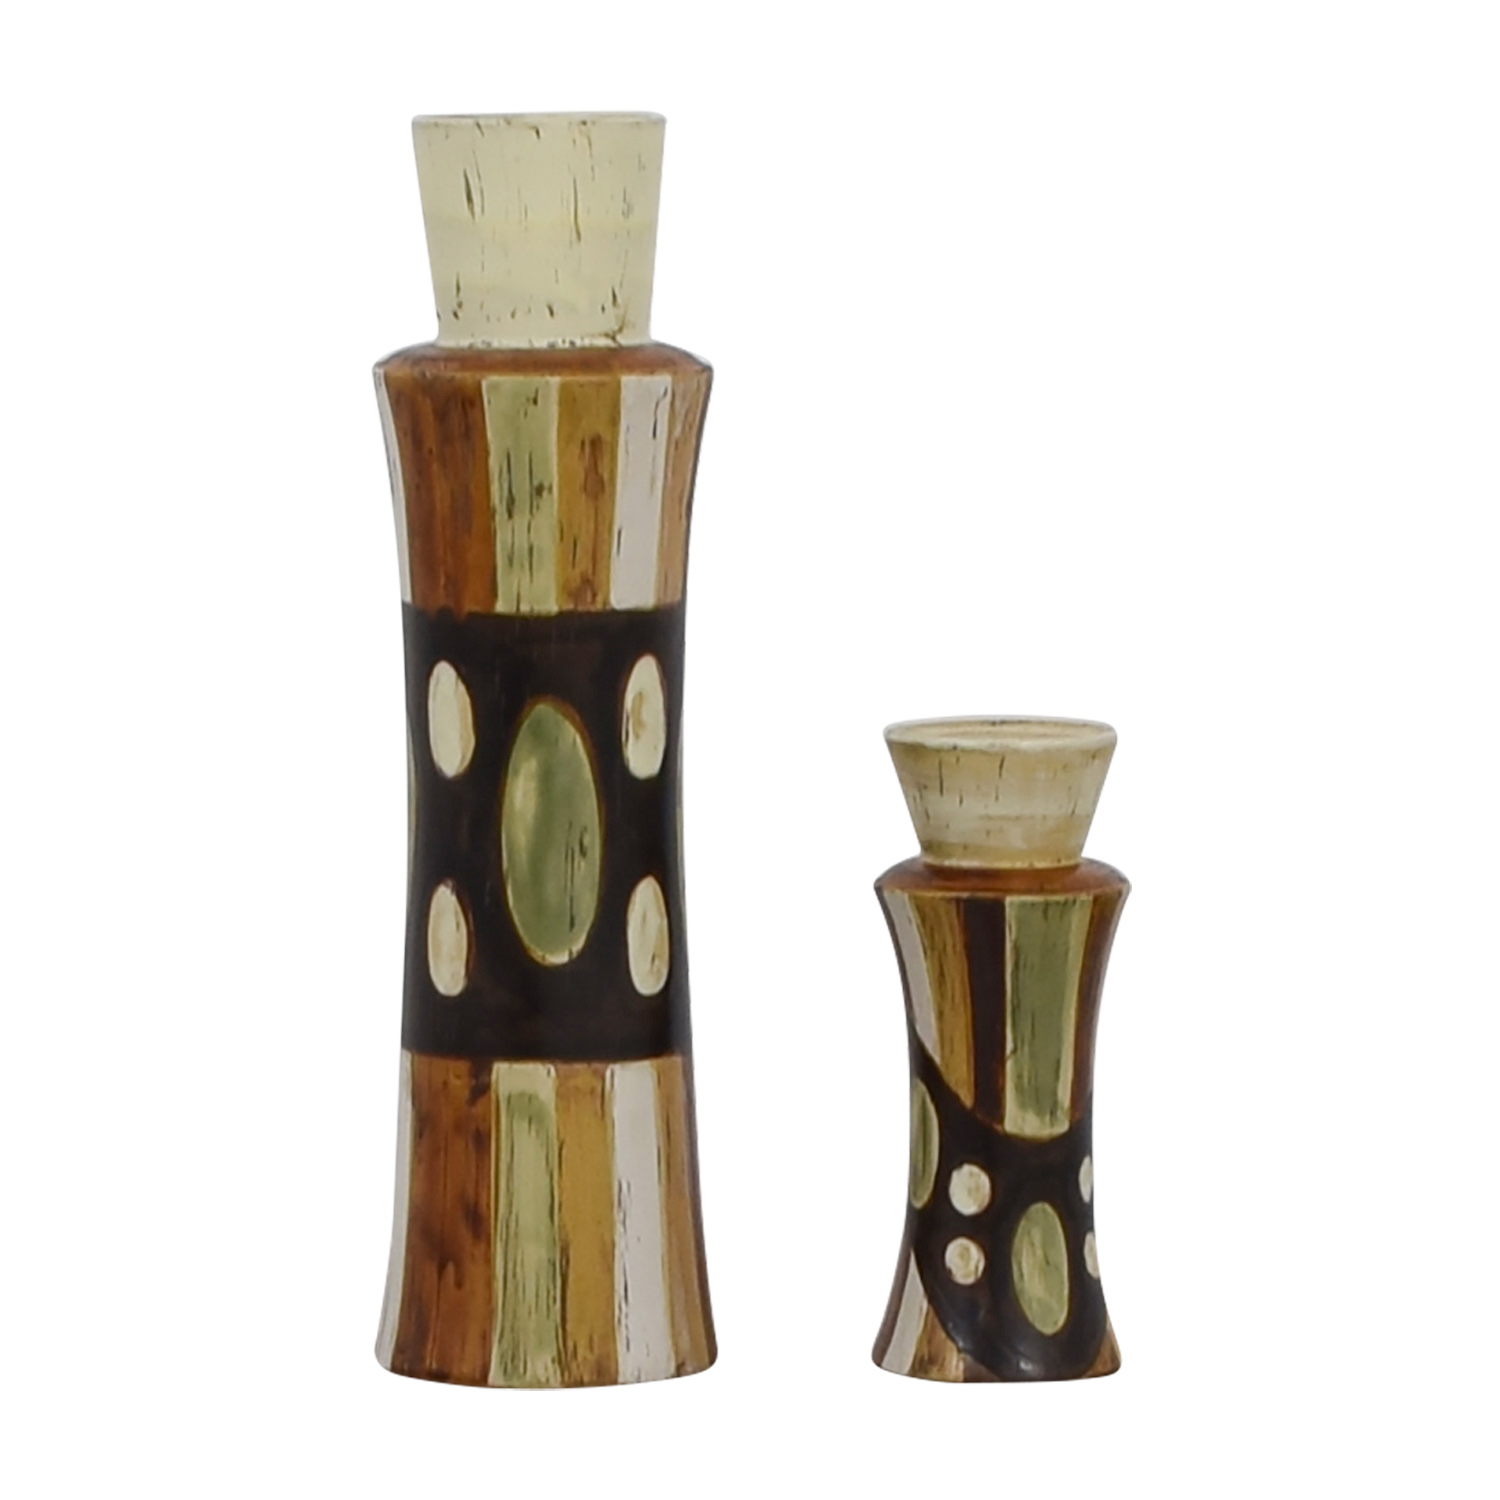 HomeGoods Ceramic Vase and Pillar Candle Holder / Decorative Accents